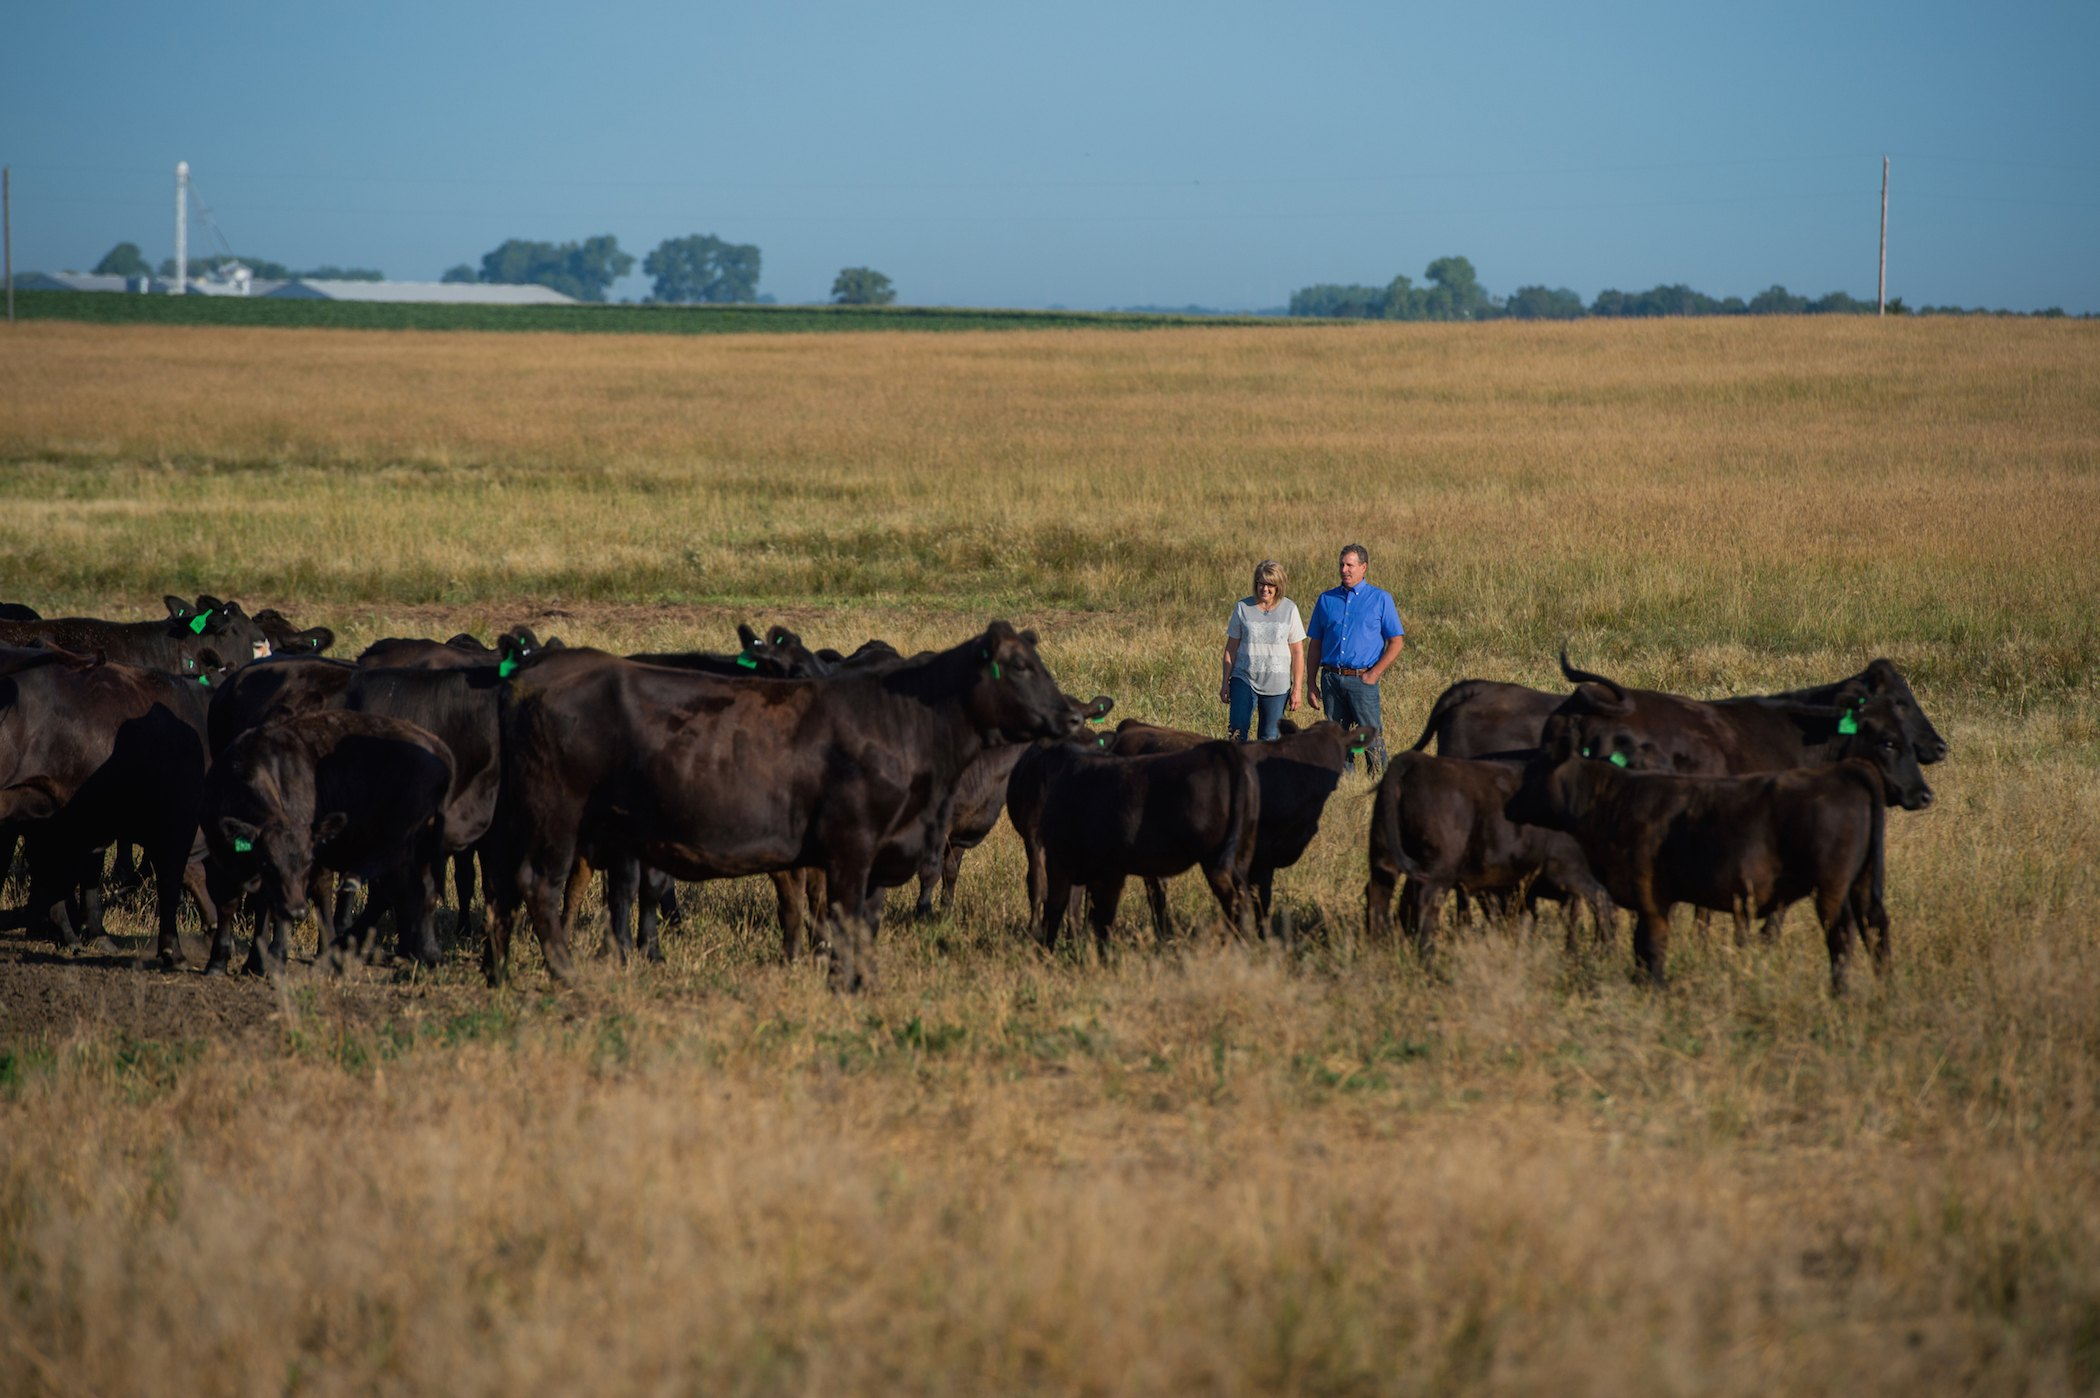 South Dakota farmers in a field with their cattle.